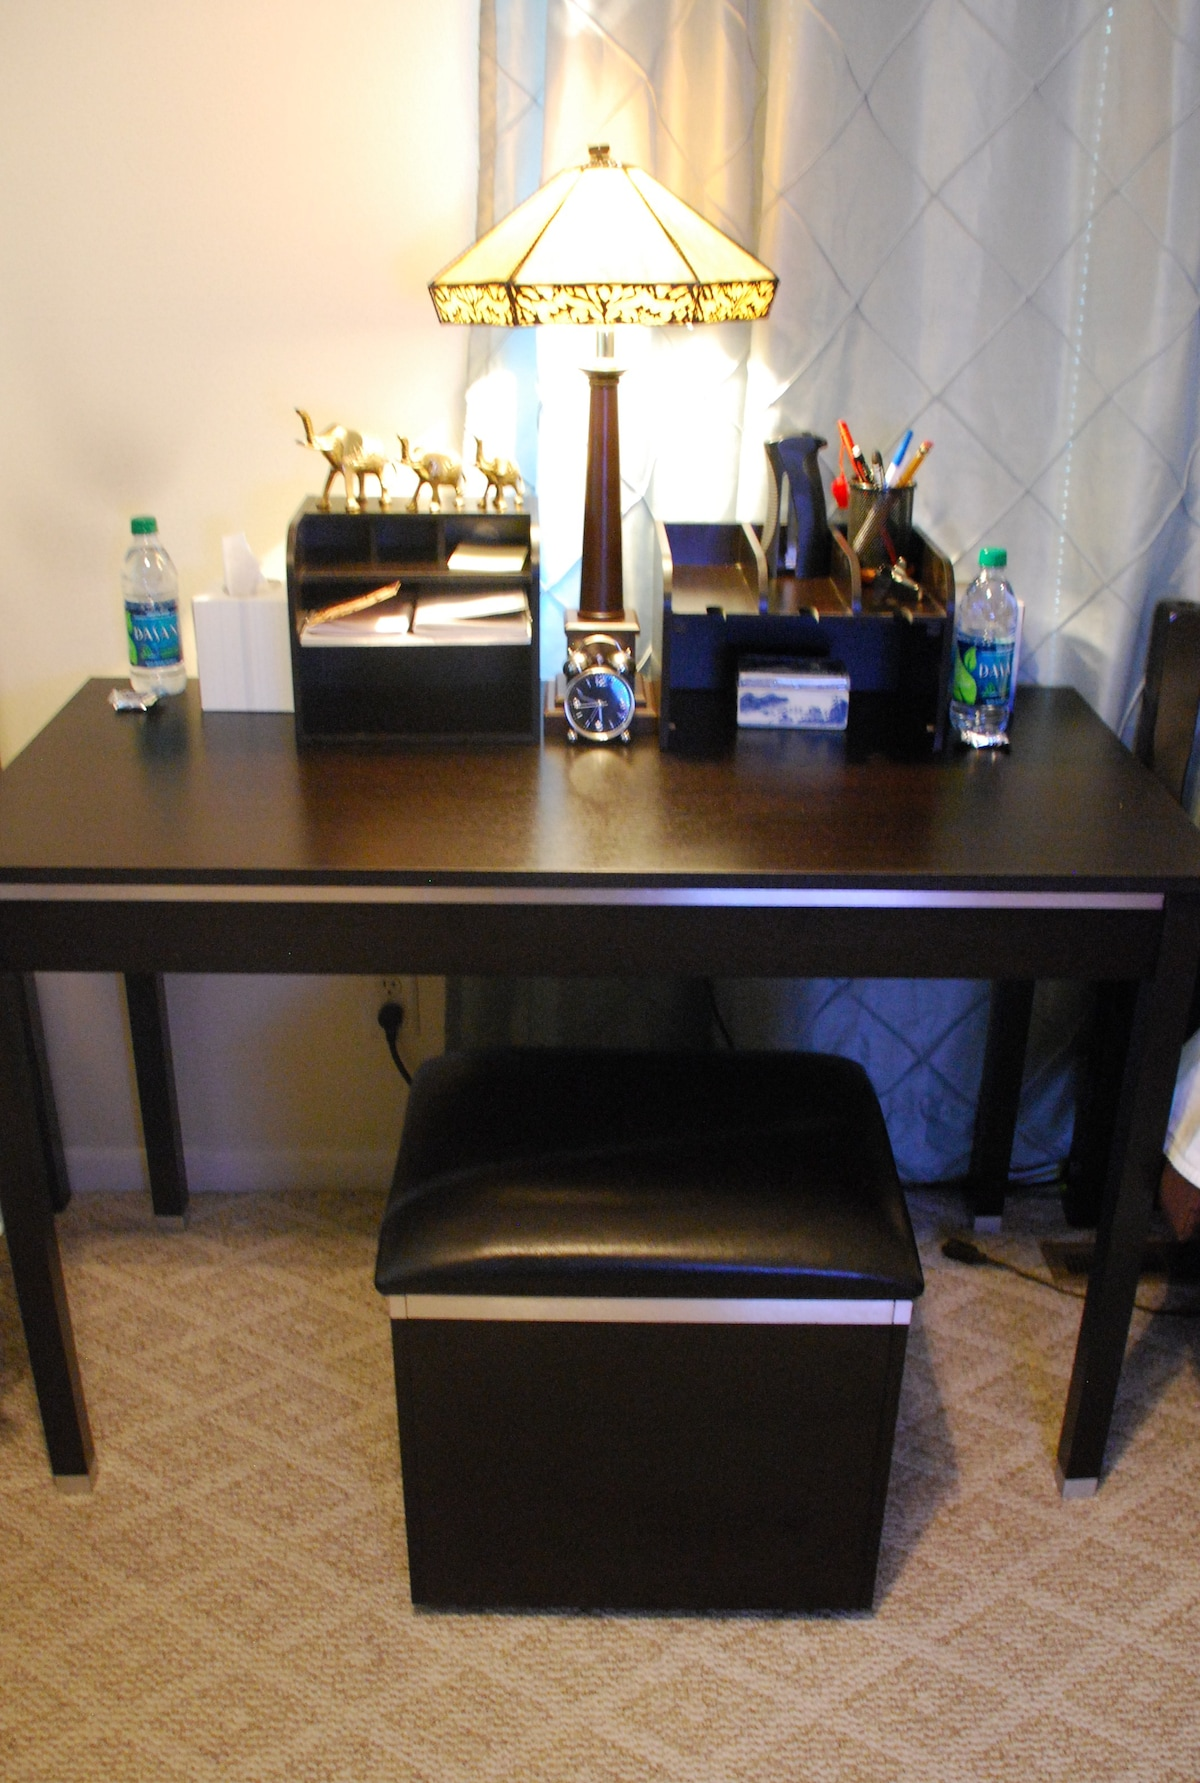 Work Station with plenty of electrical outlets & basic office supplies